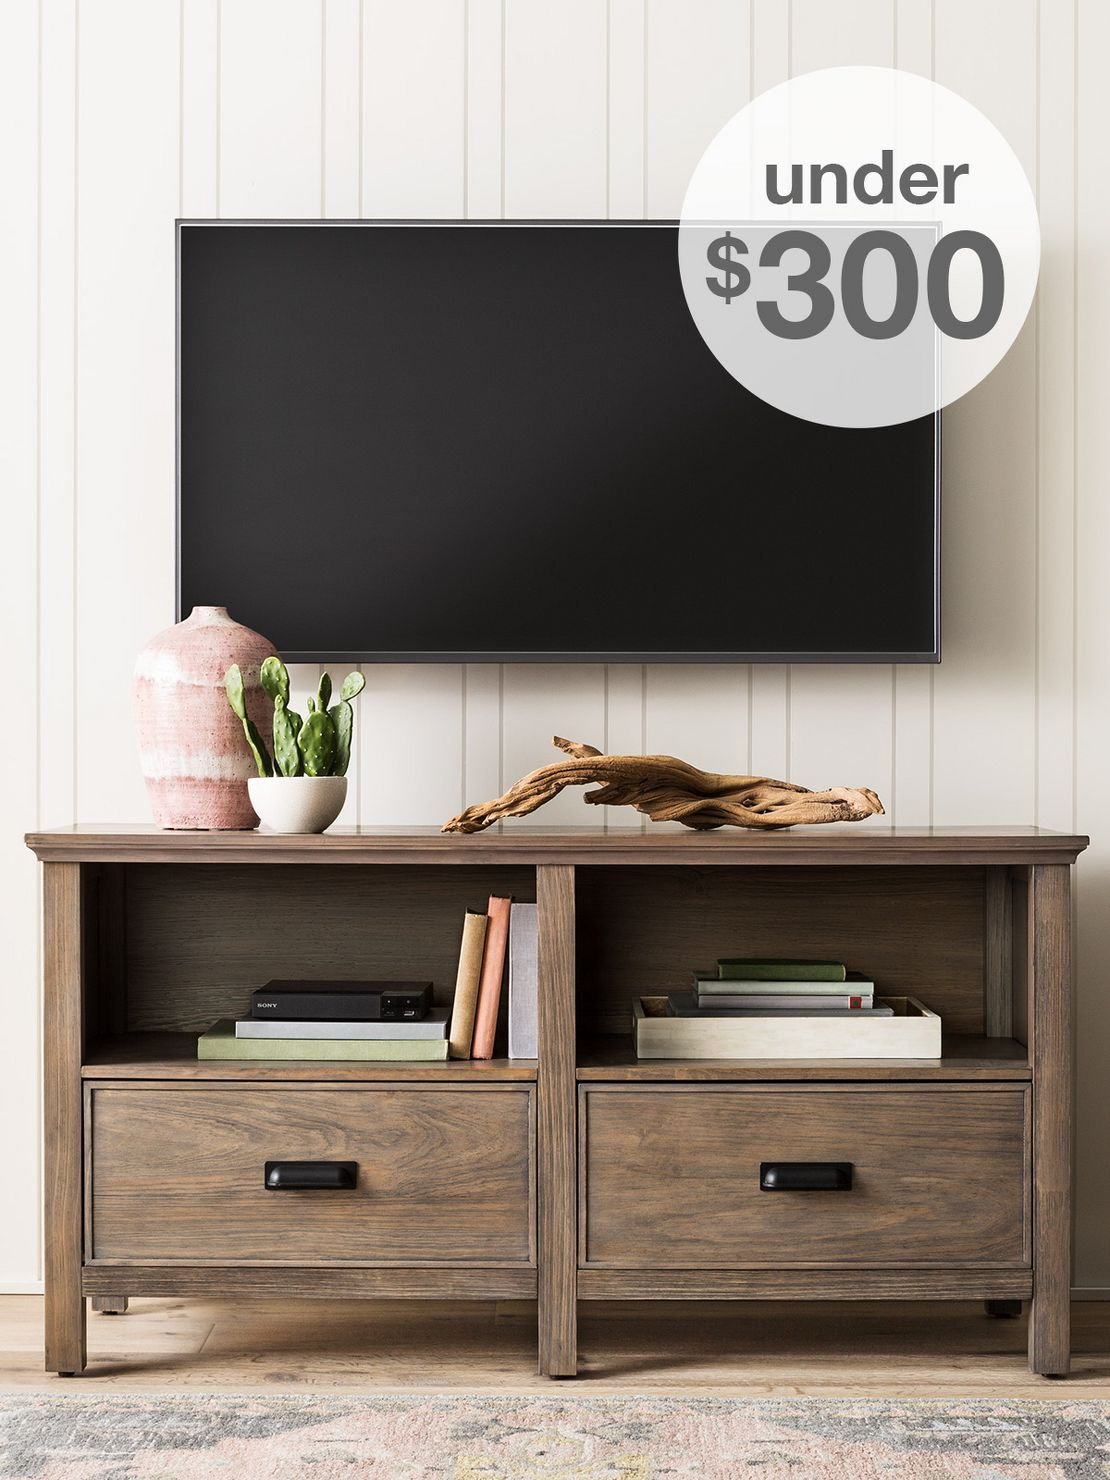 Threshold living room furniture target - Tv stands small spaces ideas ...